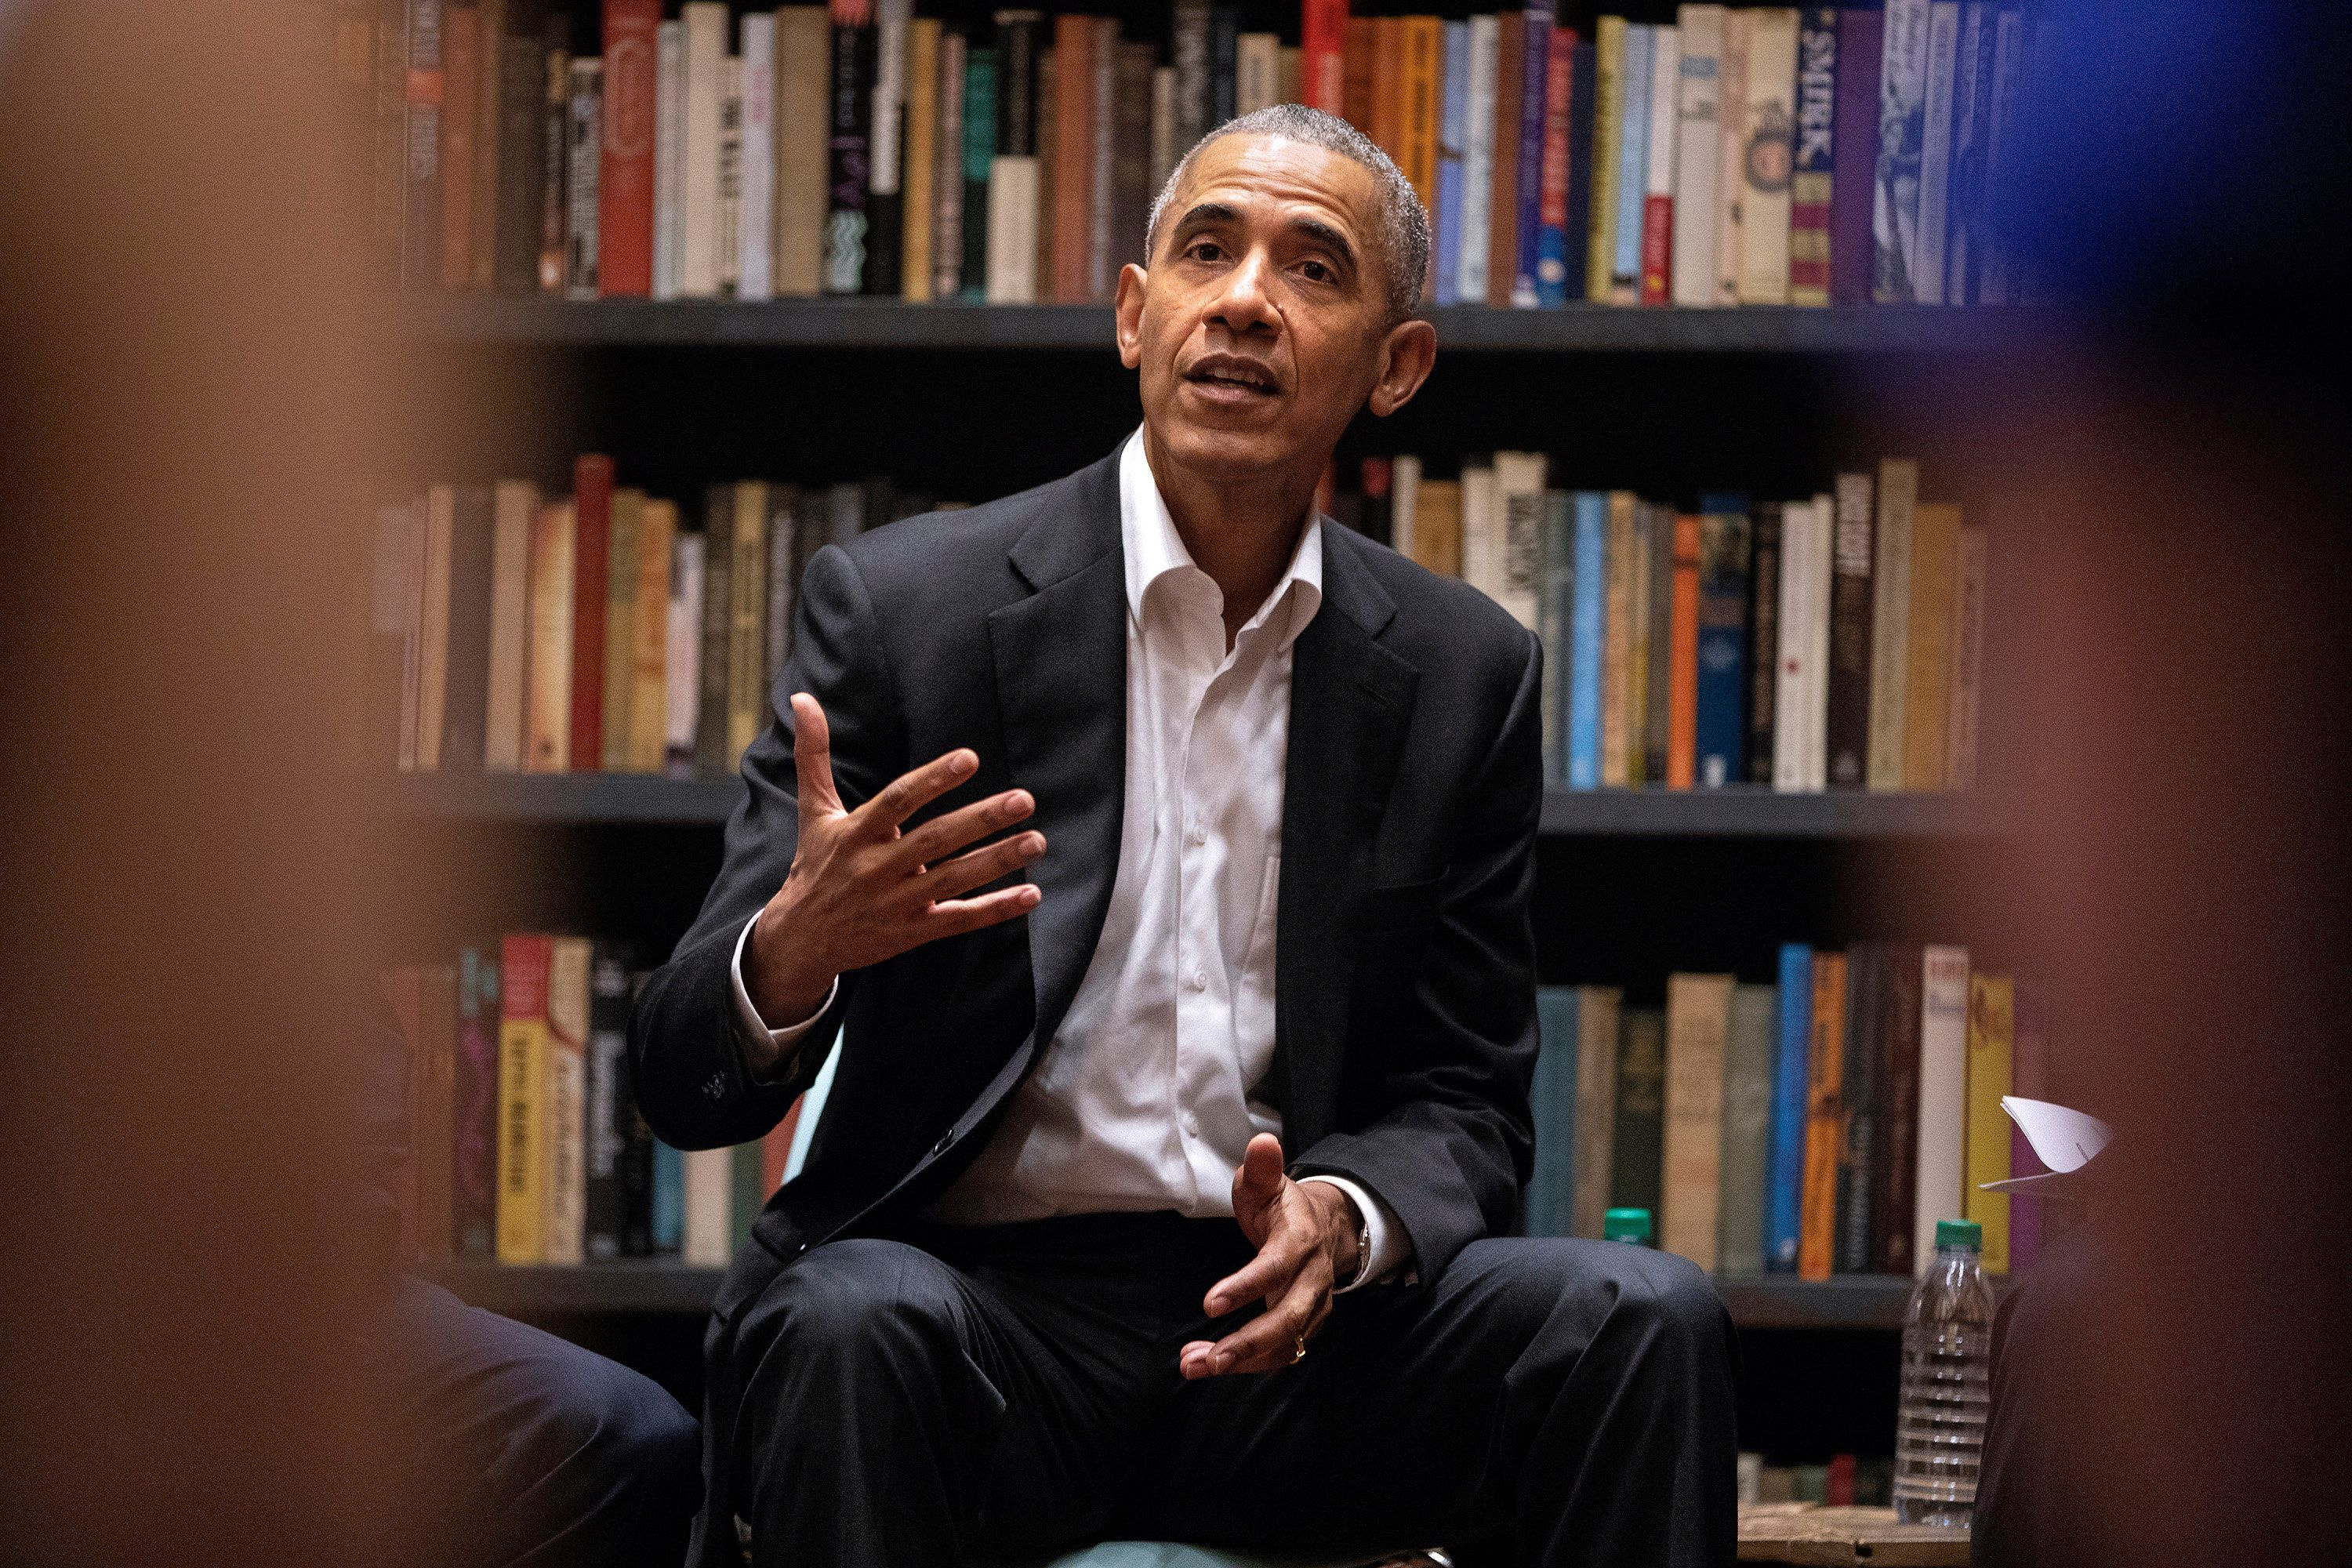 Former President Barack Obama speaks to Obama Foundation Fellows gathered on Wednesday, May 16, 2018 at Stony Island Arts Bank in Chicago. Obama met with several Democrats considering running for president in 2020. (Erin Hooley/Chicago Tribune/TNS via Getty Images)